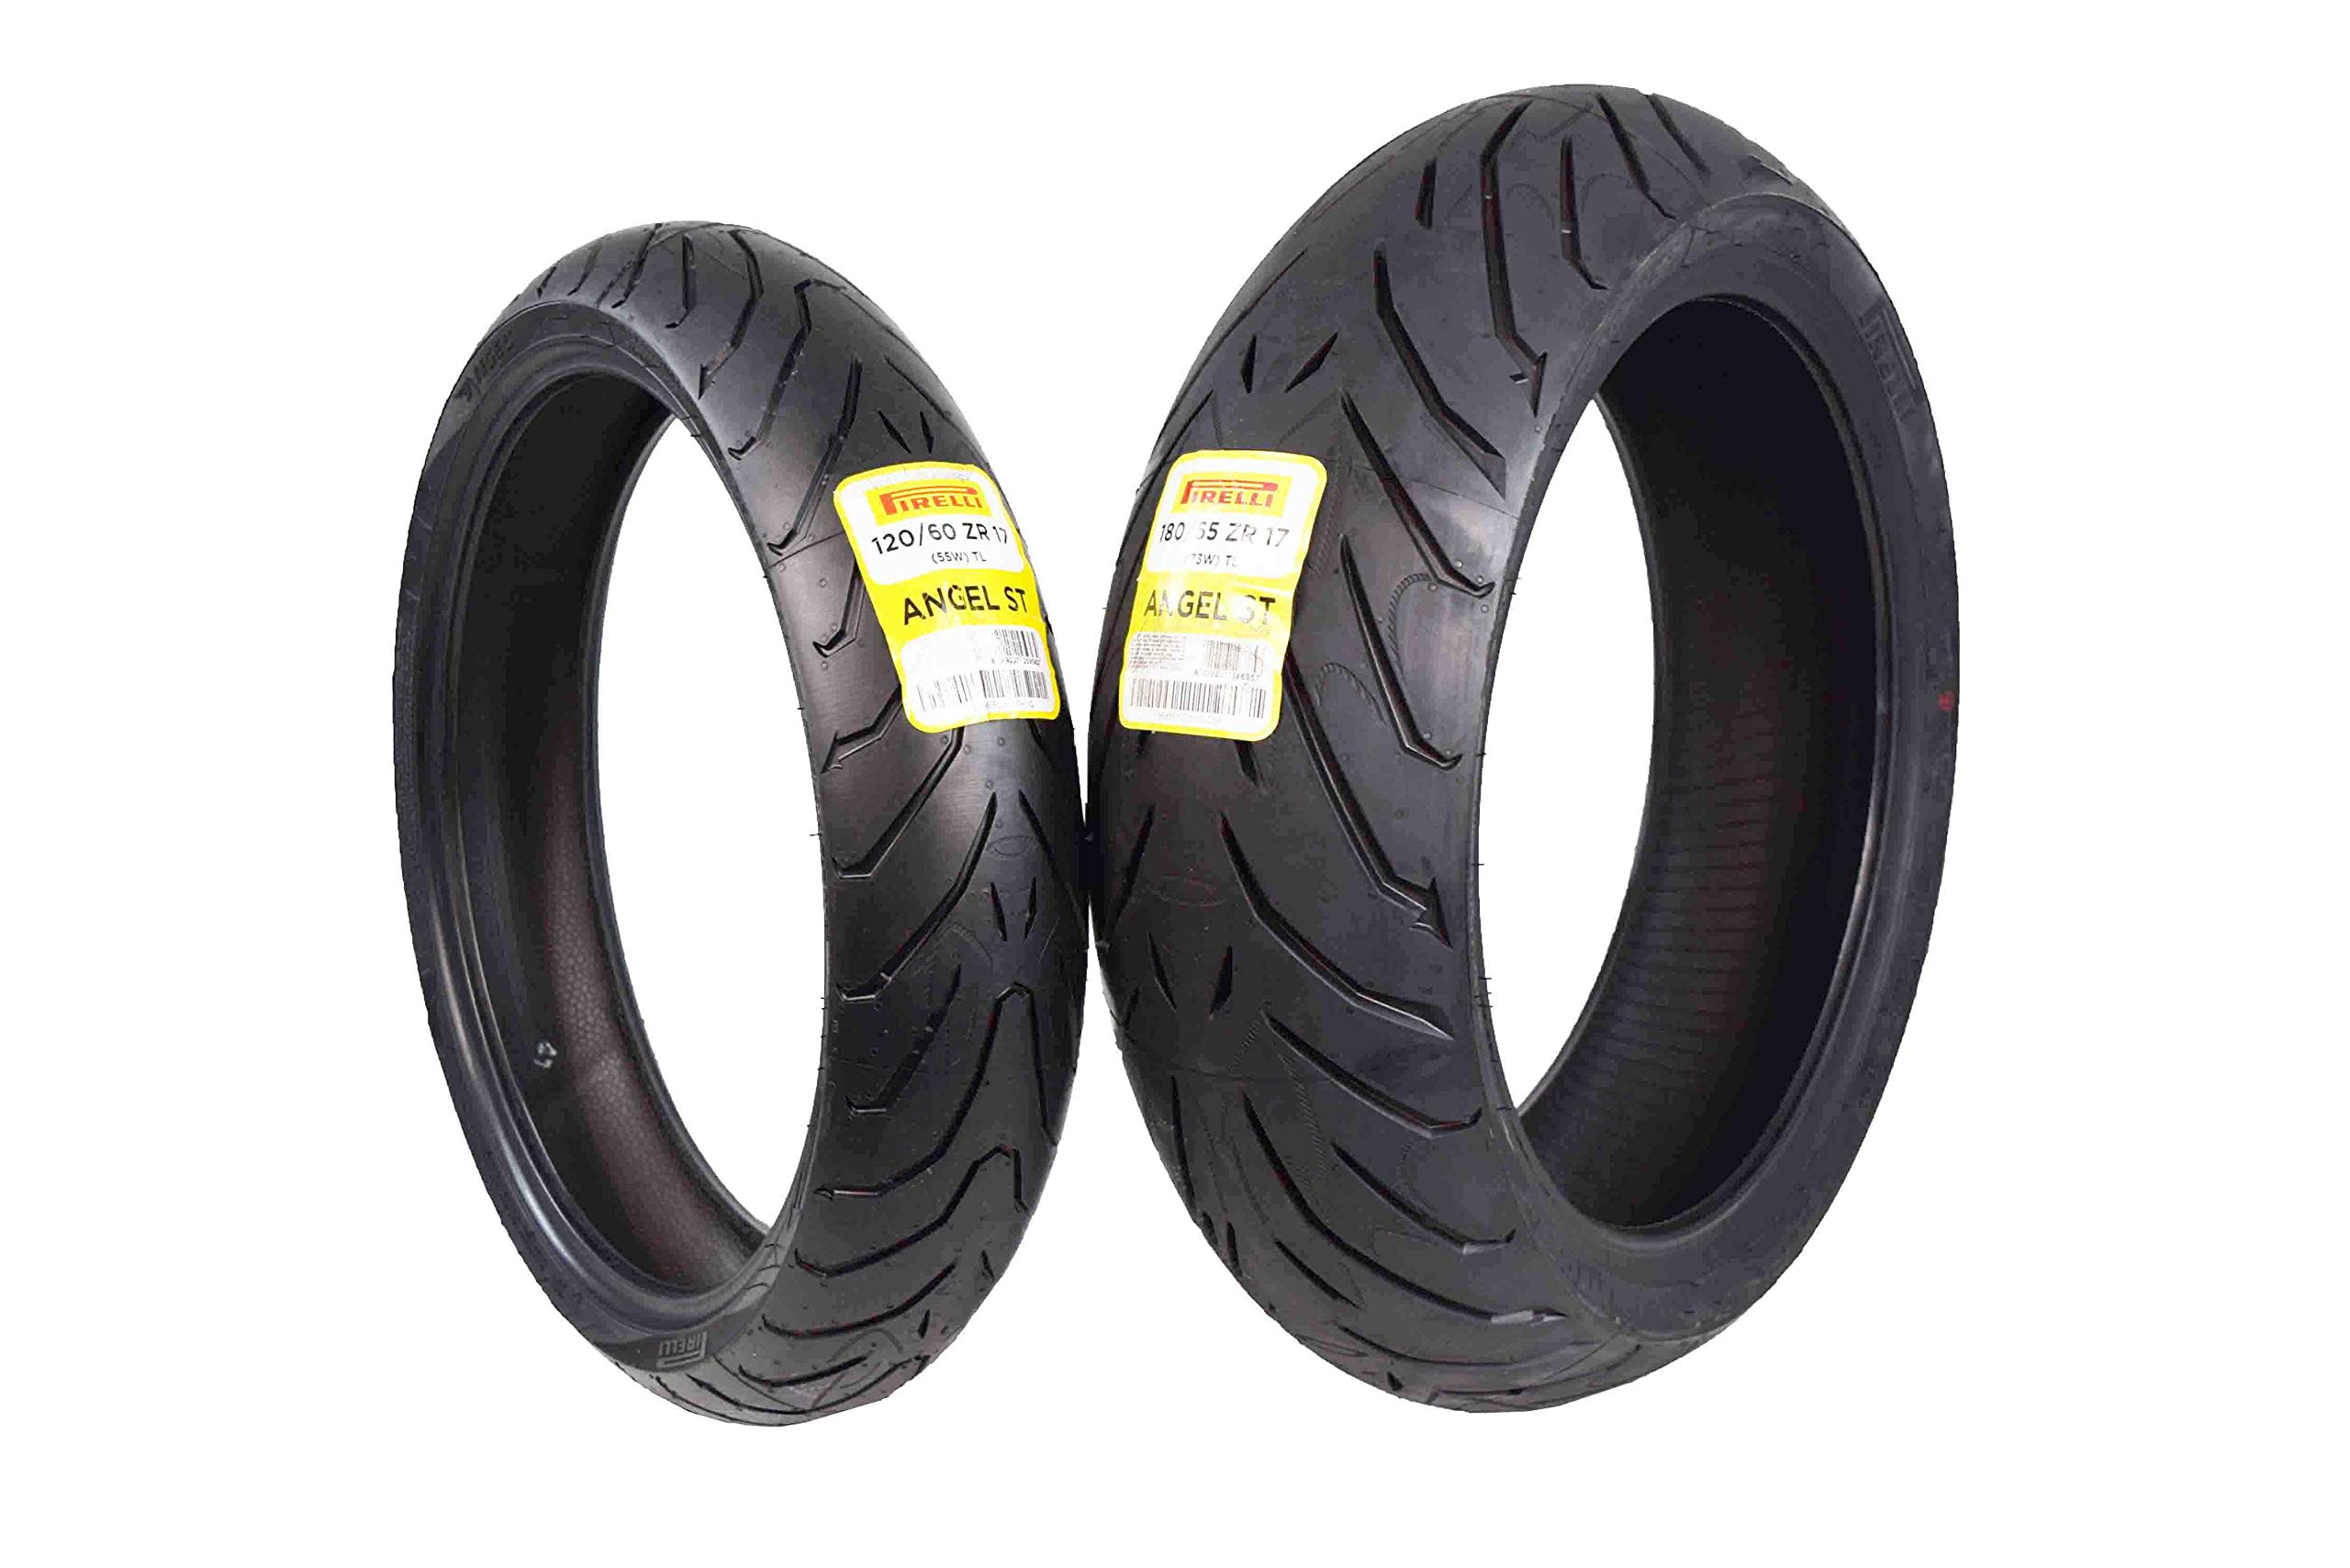 Pirelli Angel ST Front & Rear Street Sport Touring Motorcycle Tires (1x Front 120/60ZR17 1x Rear 180/55ZR17)